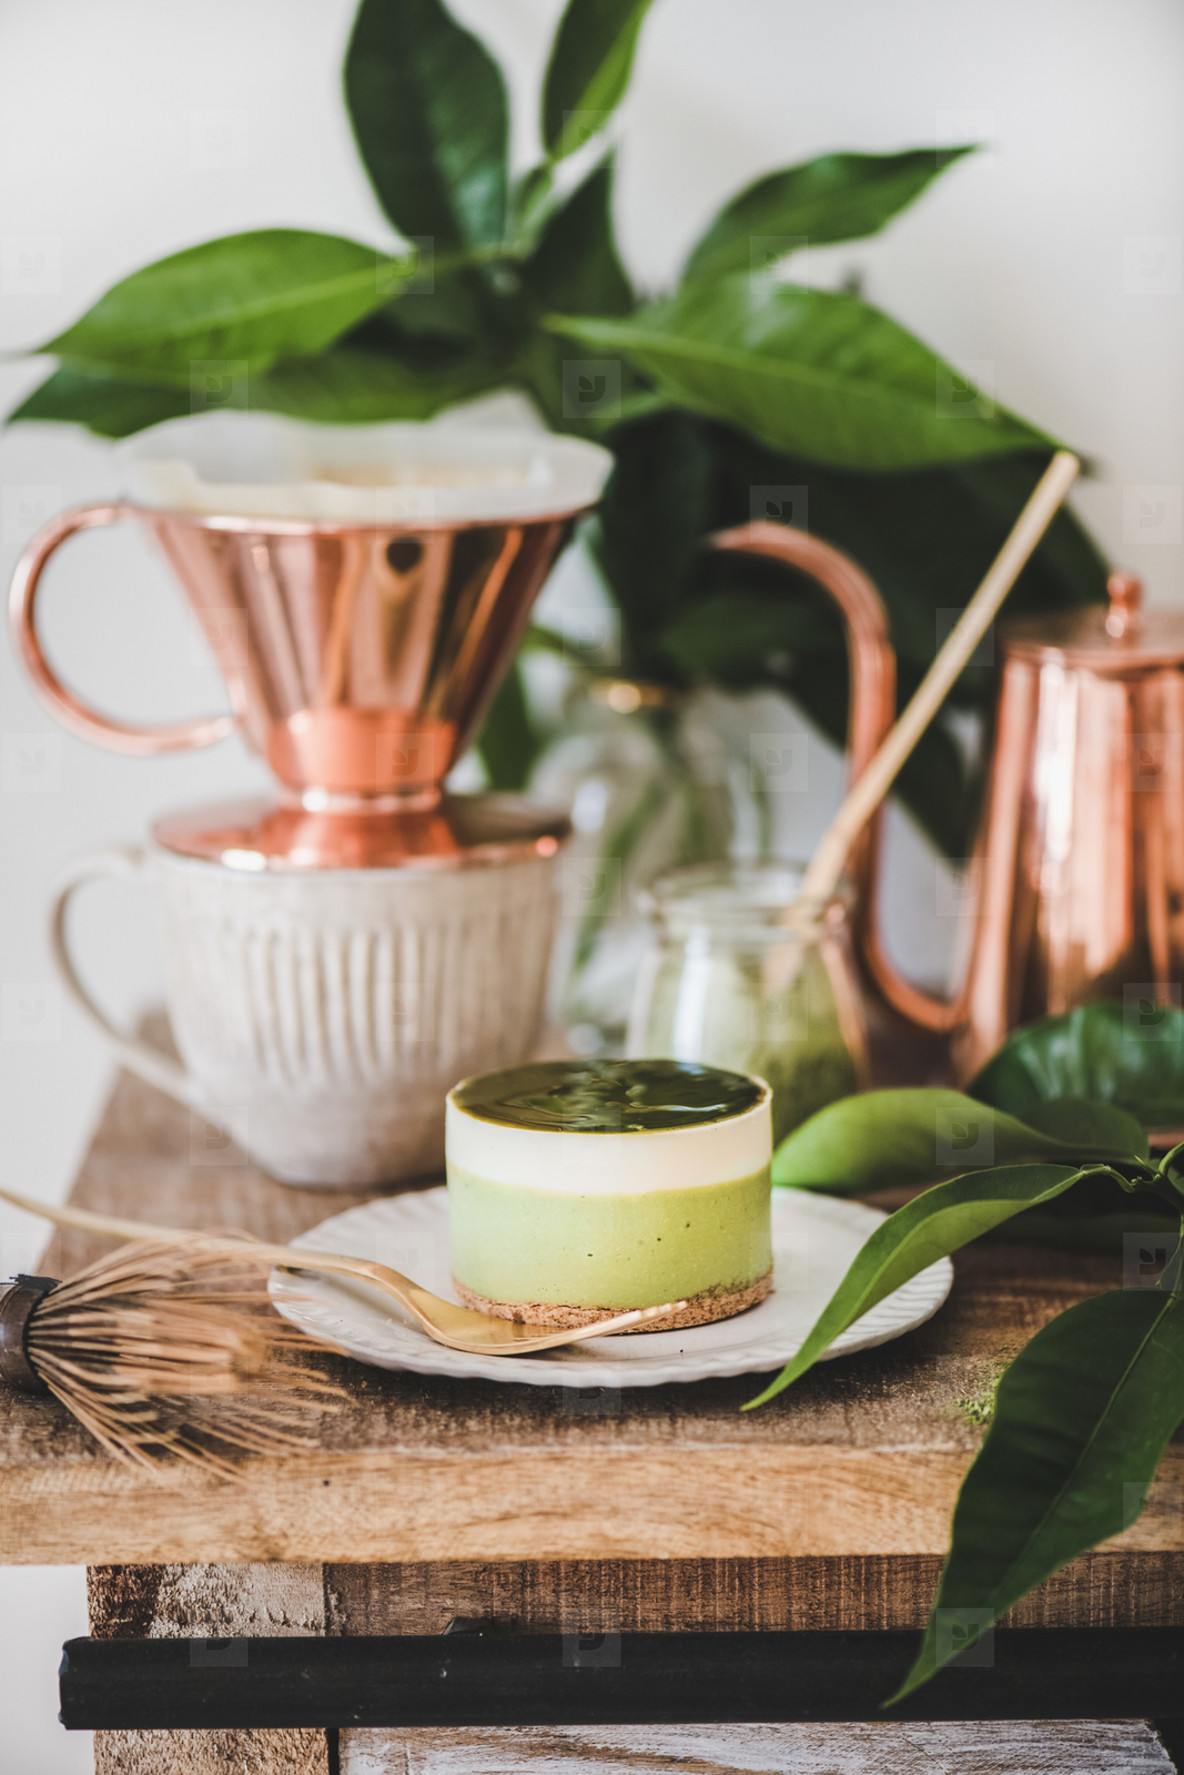 Green matcha cheesecake and coffee in copper pot and mug